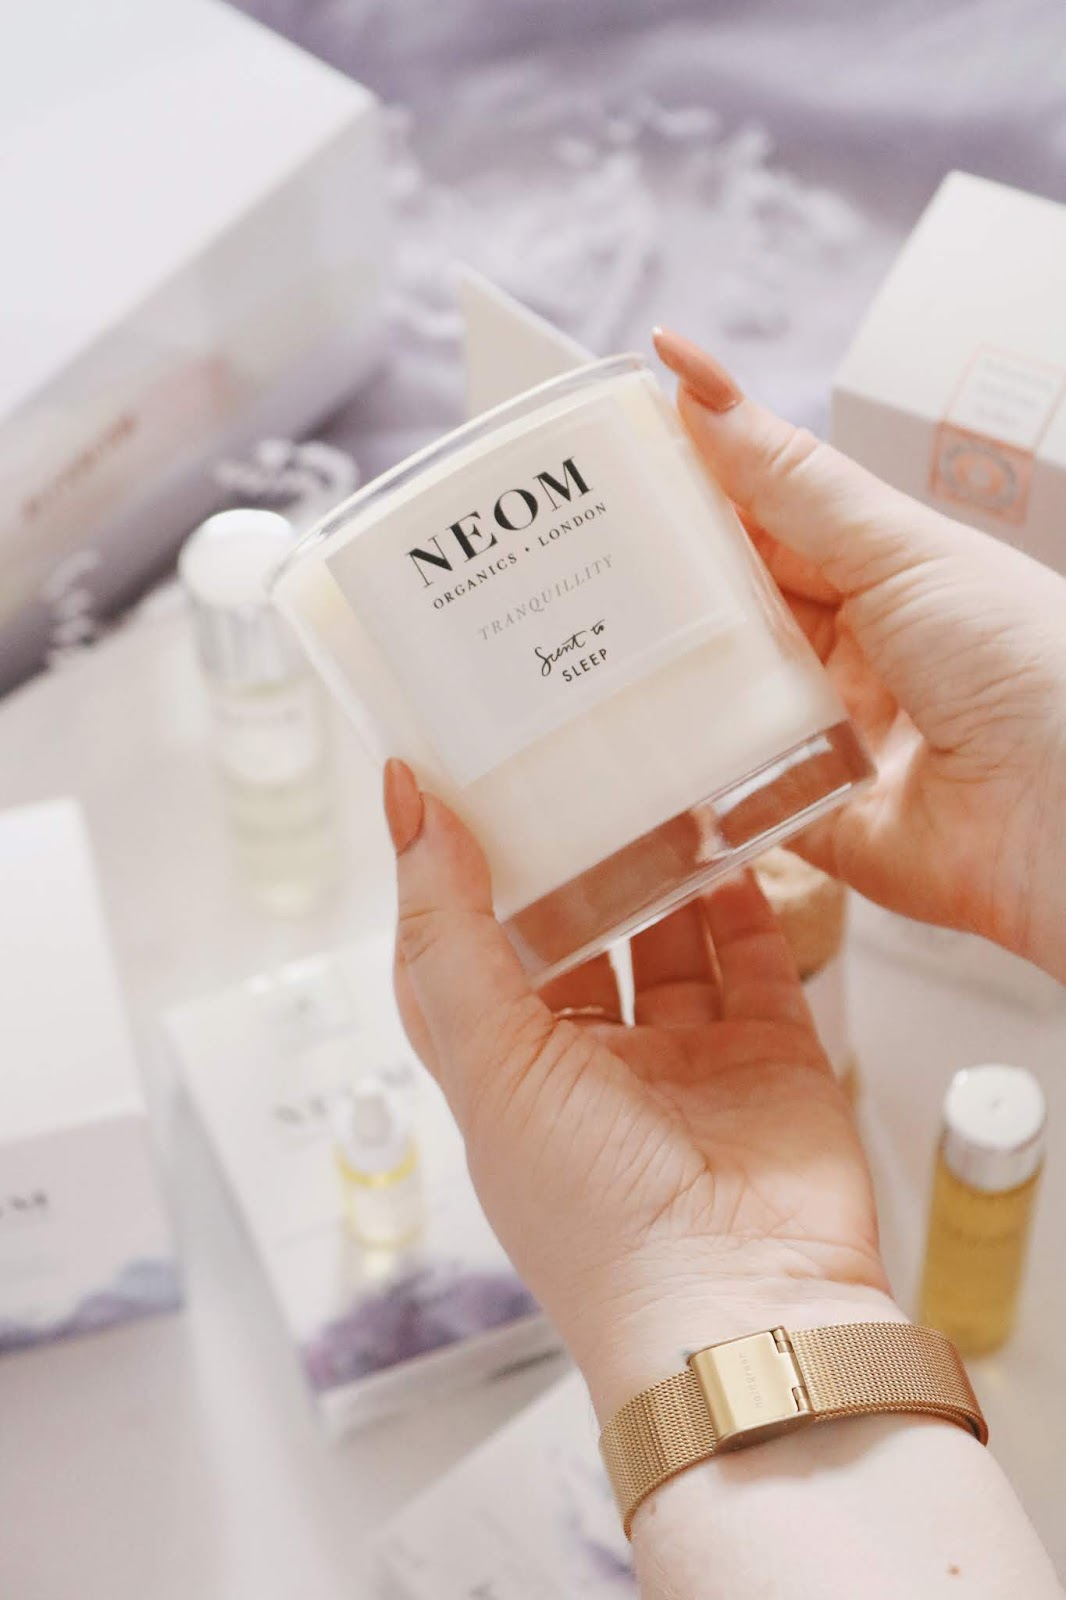 LookFantastic x Neom Box